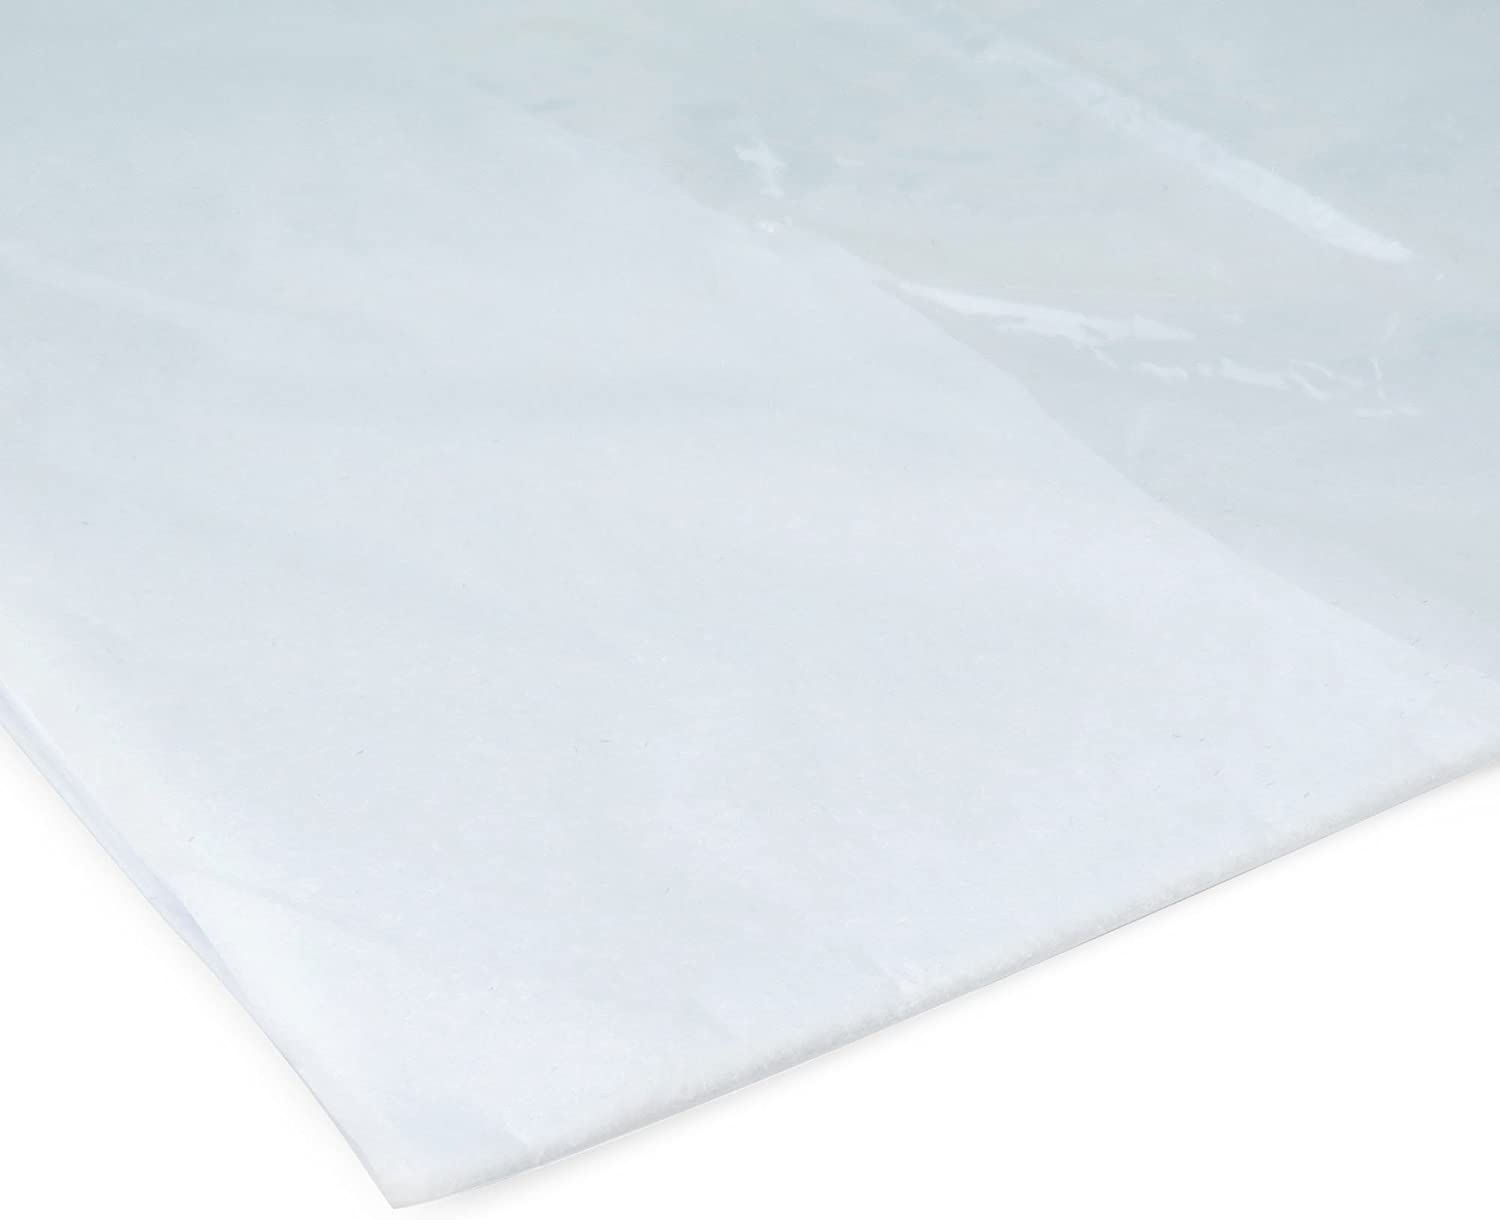 HANGERWORLD Pack of 10 Acid Wrap Protective Delicate Clothing Craft Tissue Paper